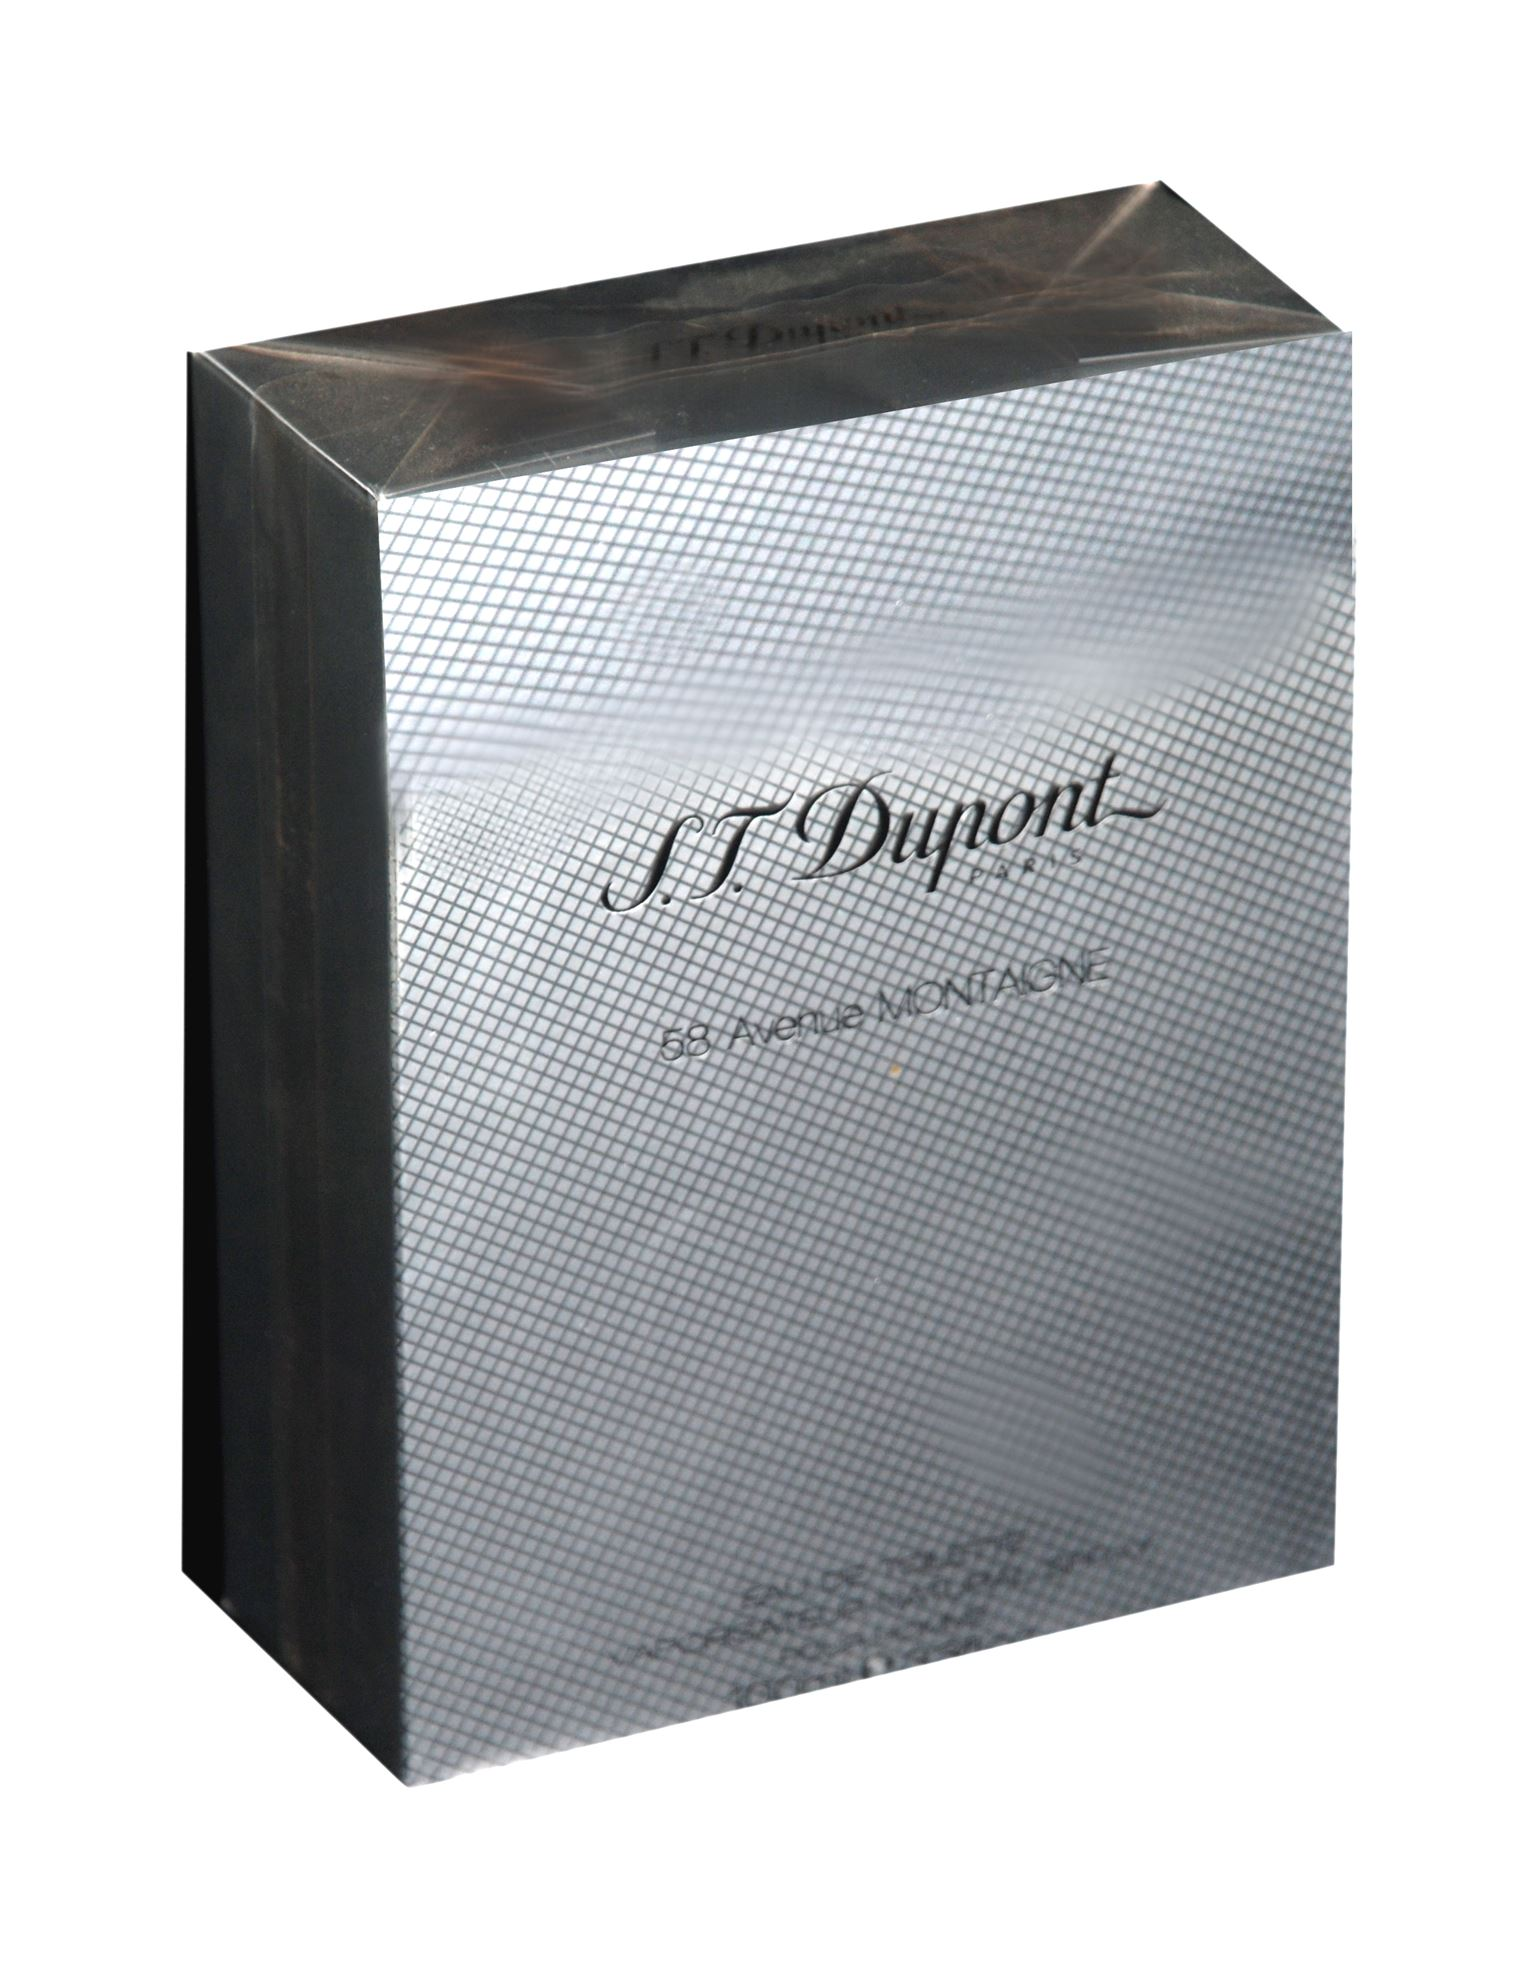 EFSCO. S.T. Dupont 58 Avenue Montaigne For Him Edt 100 ML